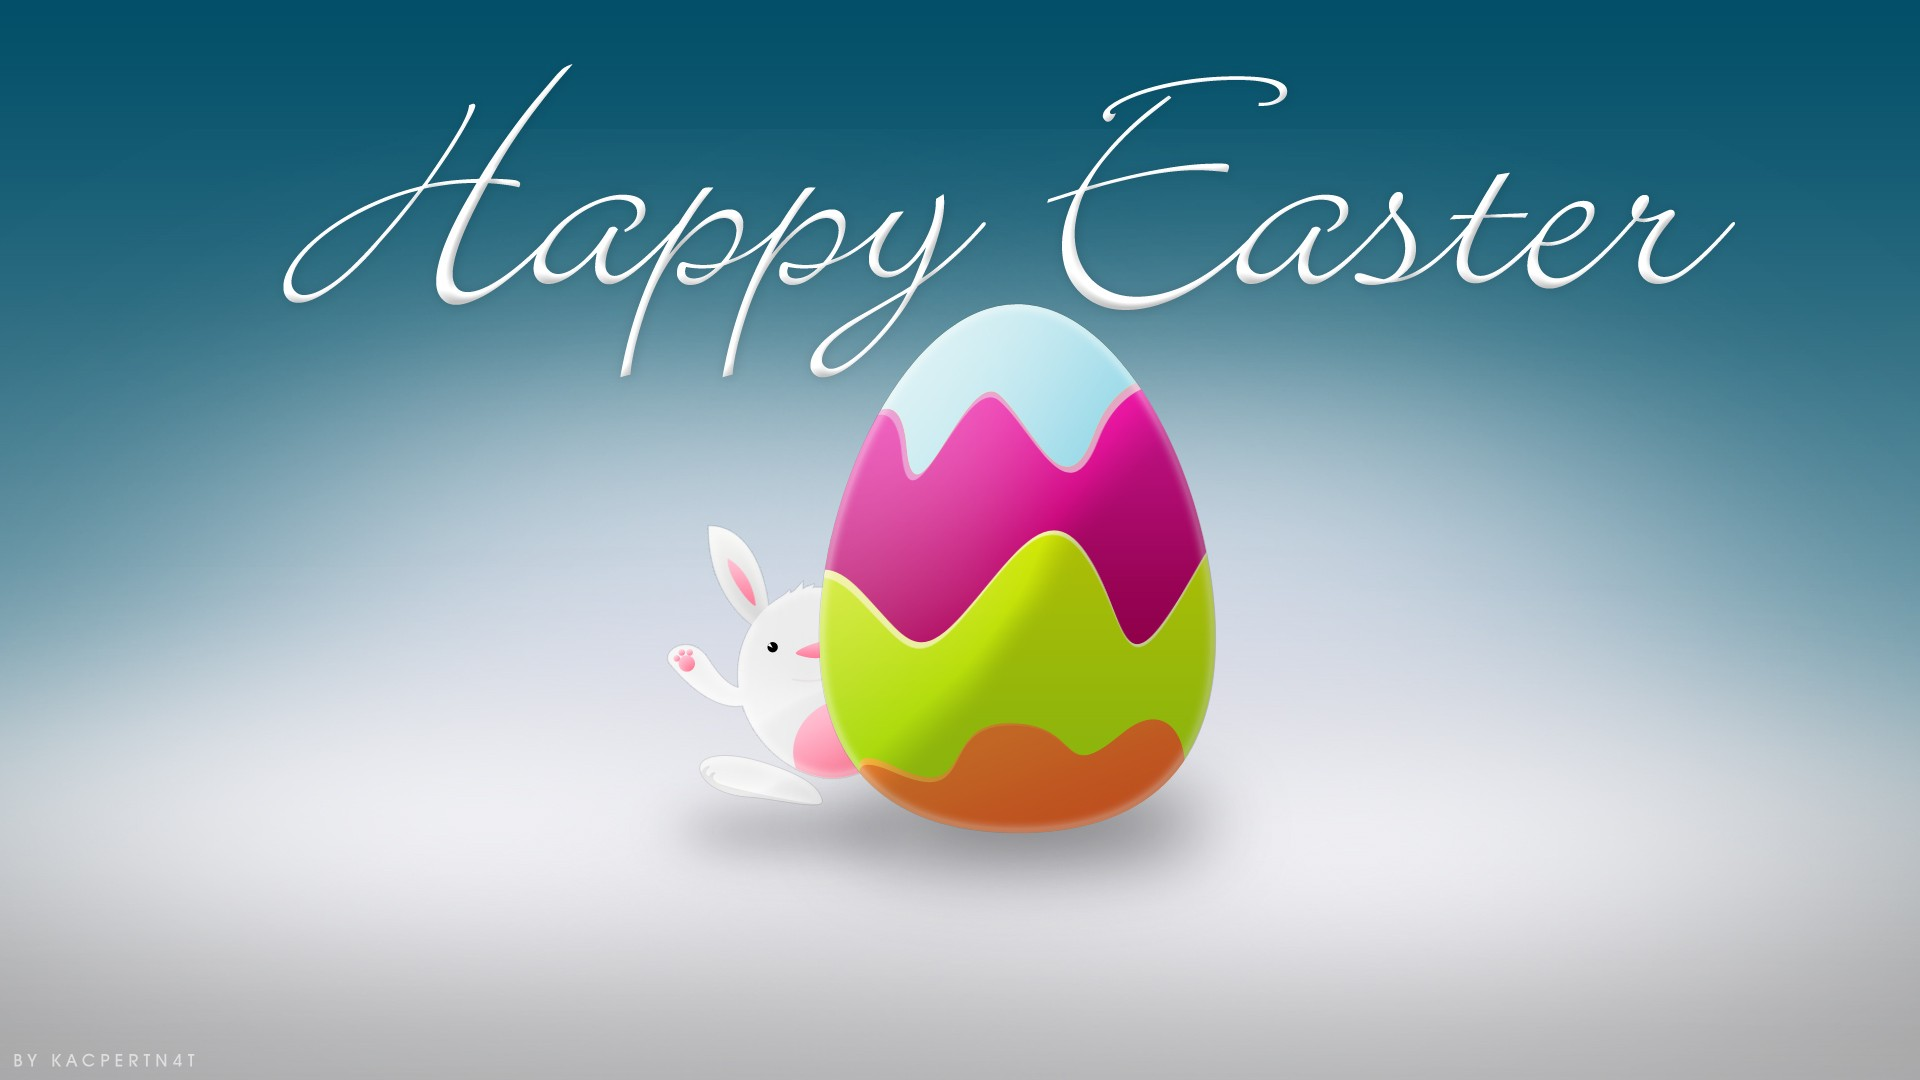 Happy easter images hd wallpaper photos for whatsapp dp profile happy easter images m4hsunfo